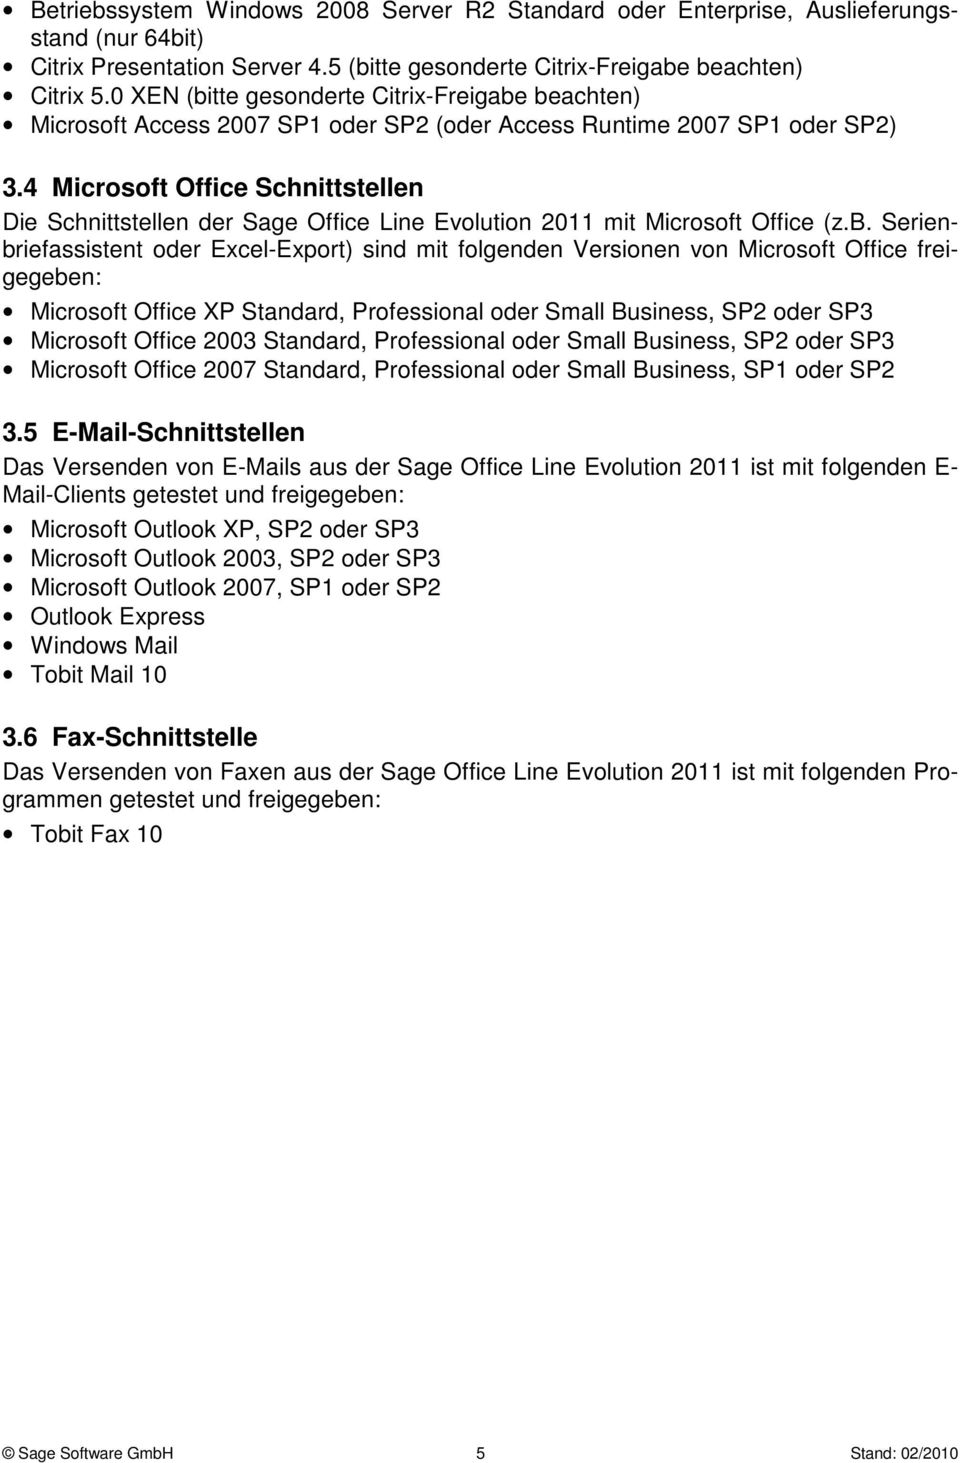 4 Microsoft Office Schnittstellen Die Schnittstellen der Sage Office Line Evolution 2011 mit Microsoft Office (z.b.